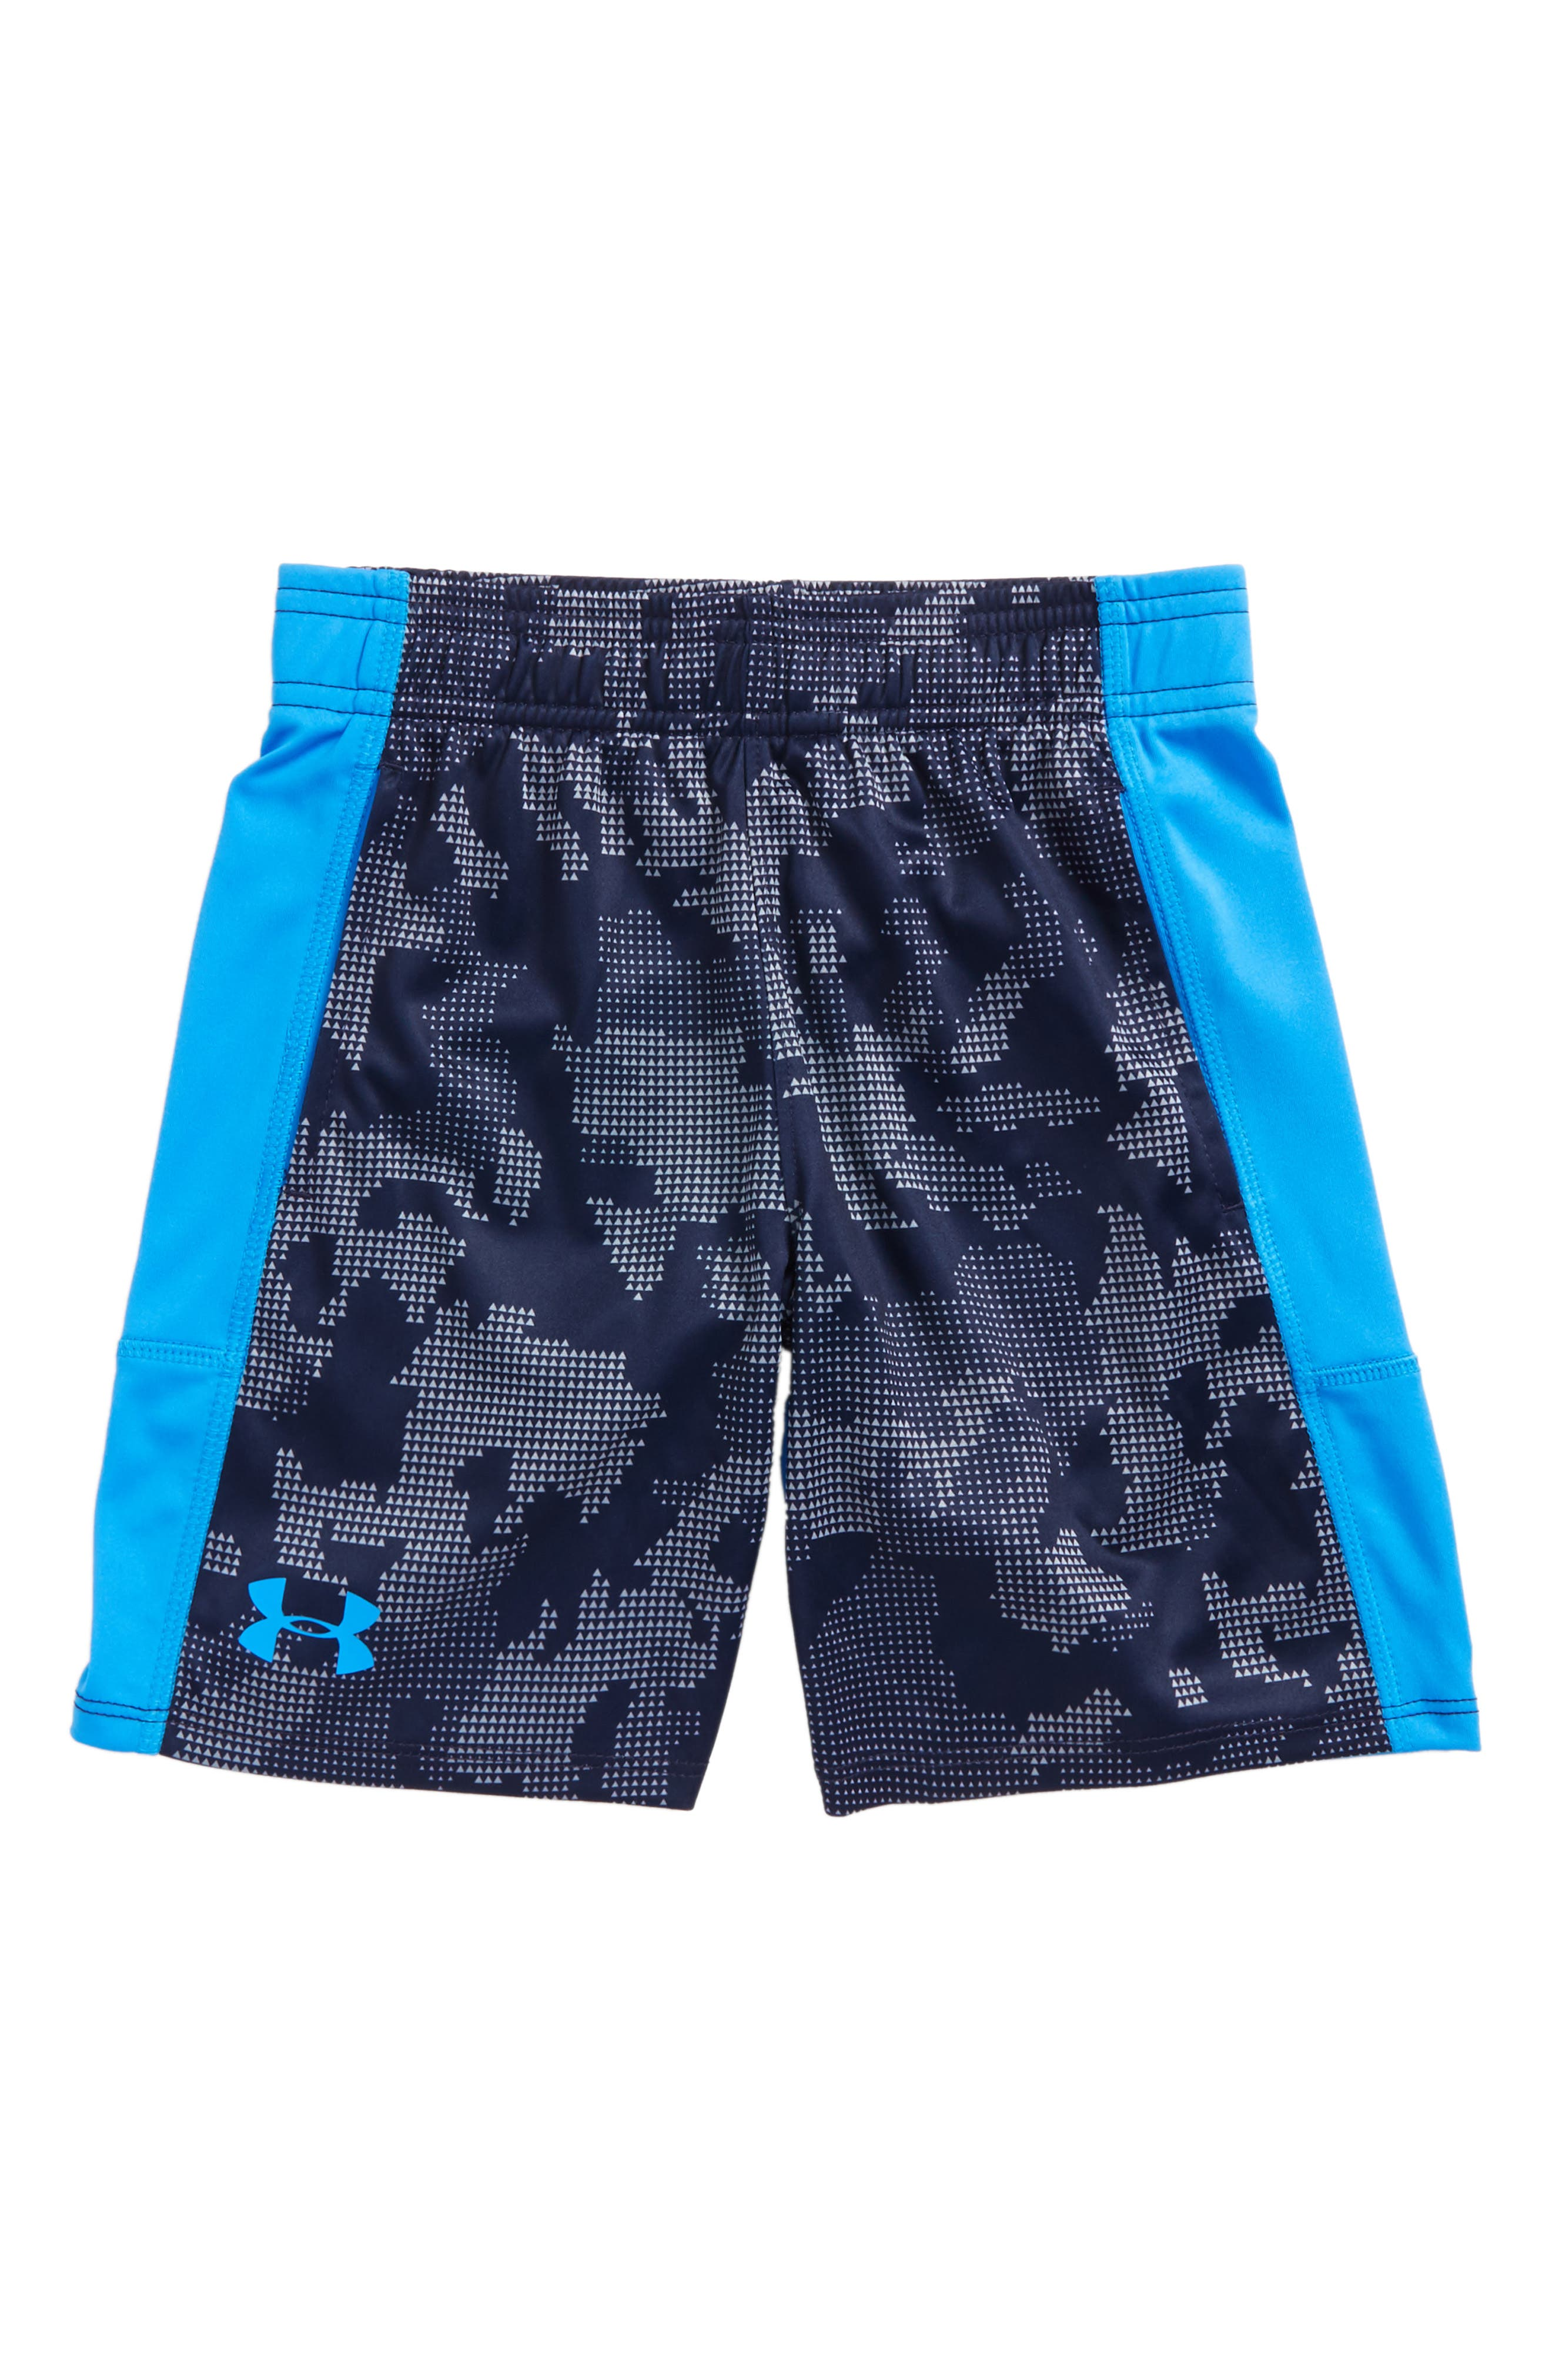 Alternate Image 1 Selected - Under Armour Stunt HeatGear® Shorts (Toddler Boys & LIttle Boys)